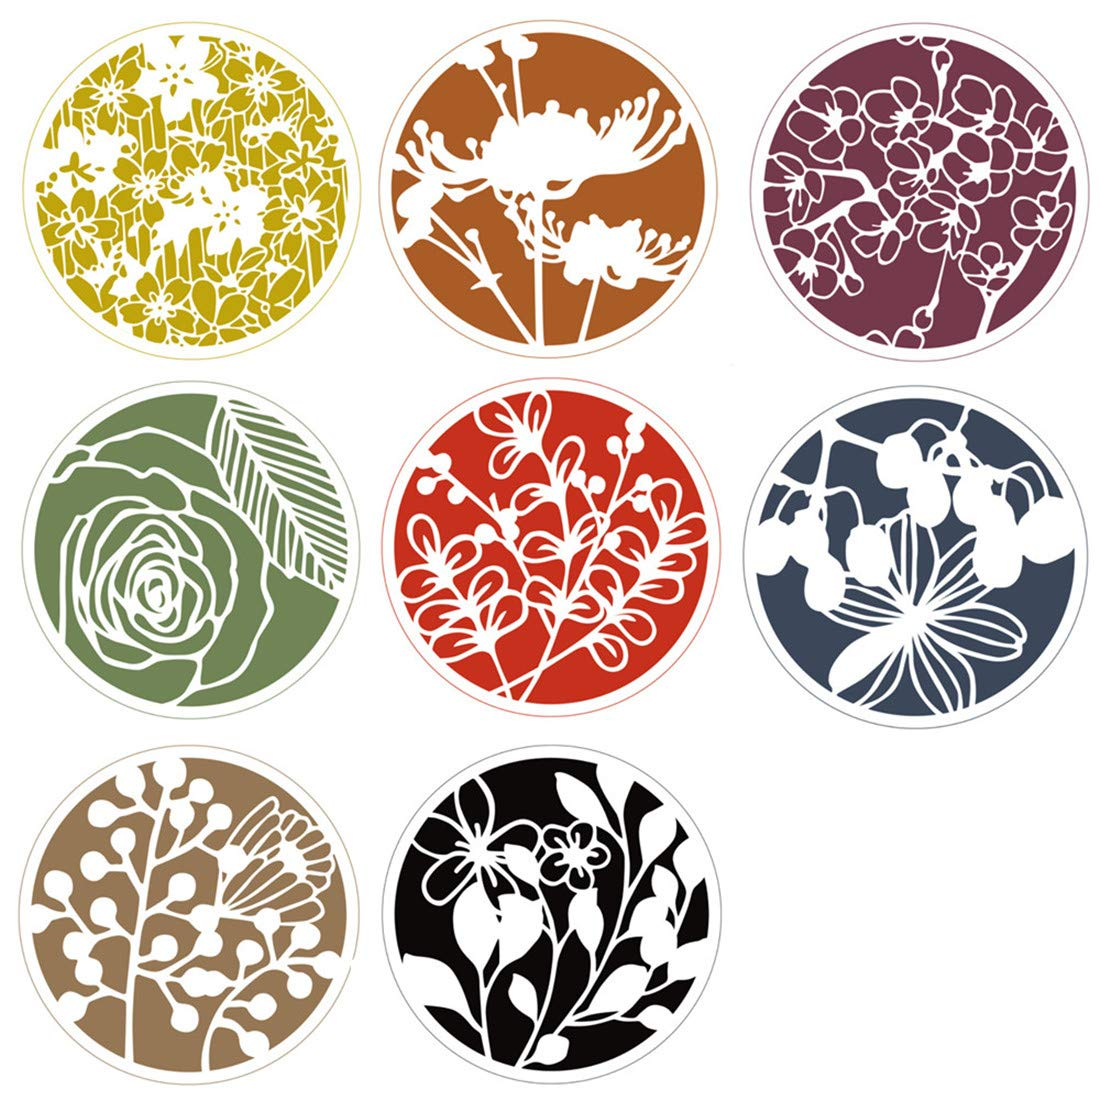 Buyby 8 Packs Flowers Stencils Scrapbooking Crafts Arts Drawing Template 17CM